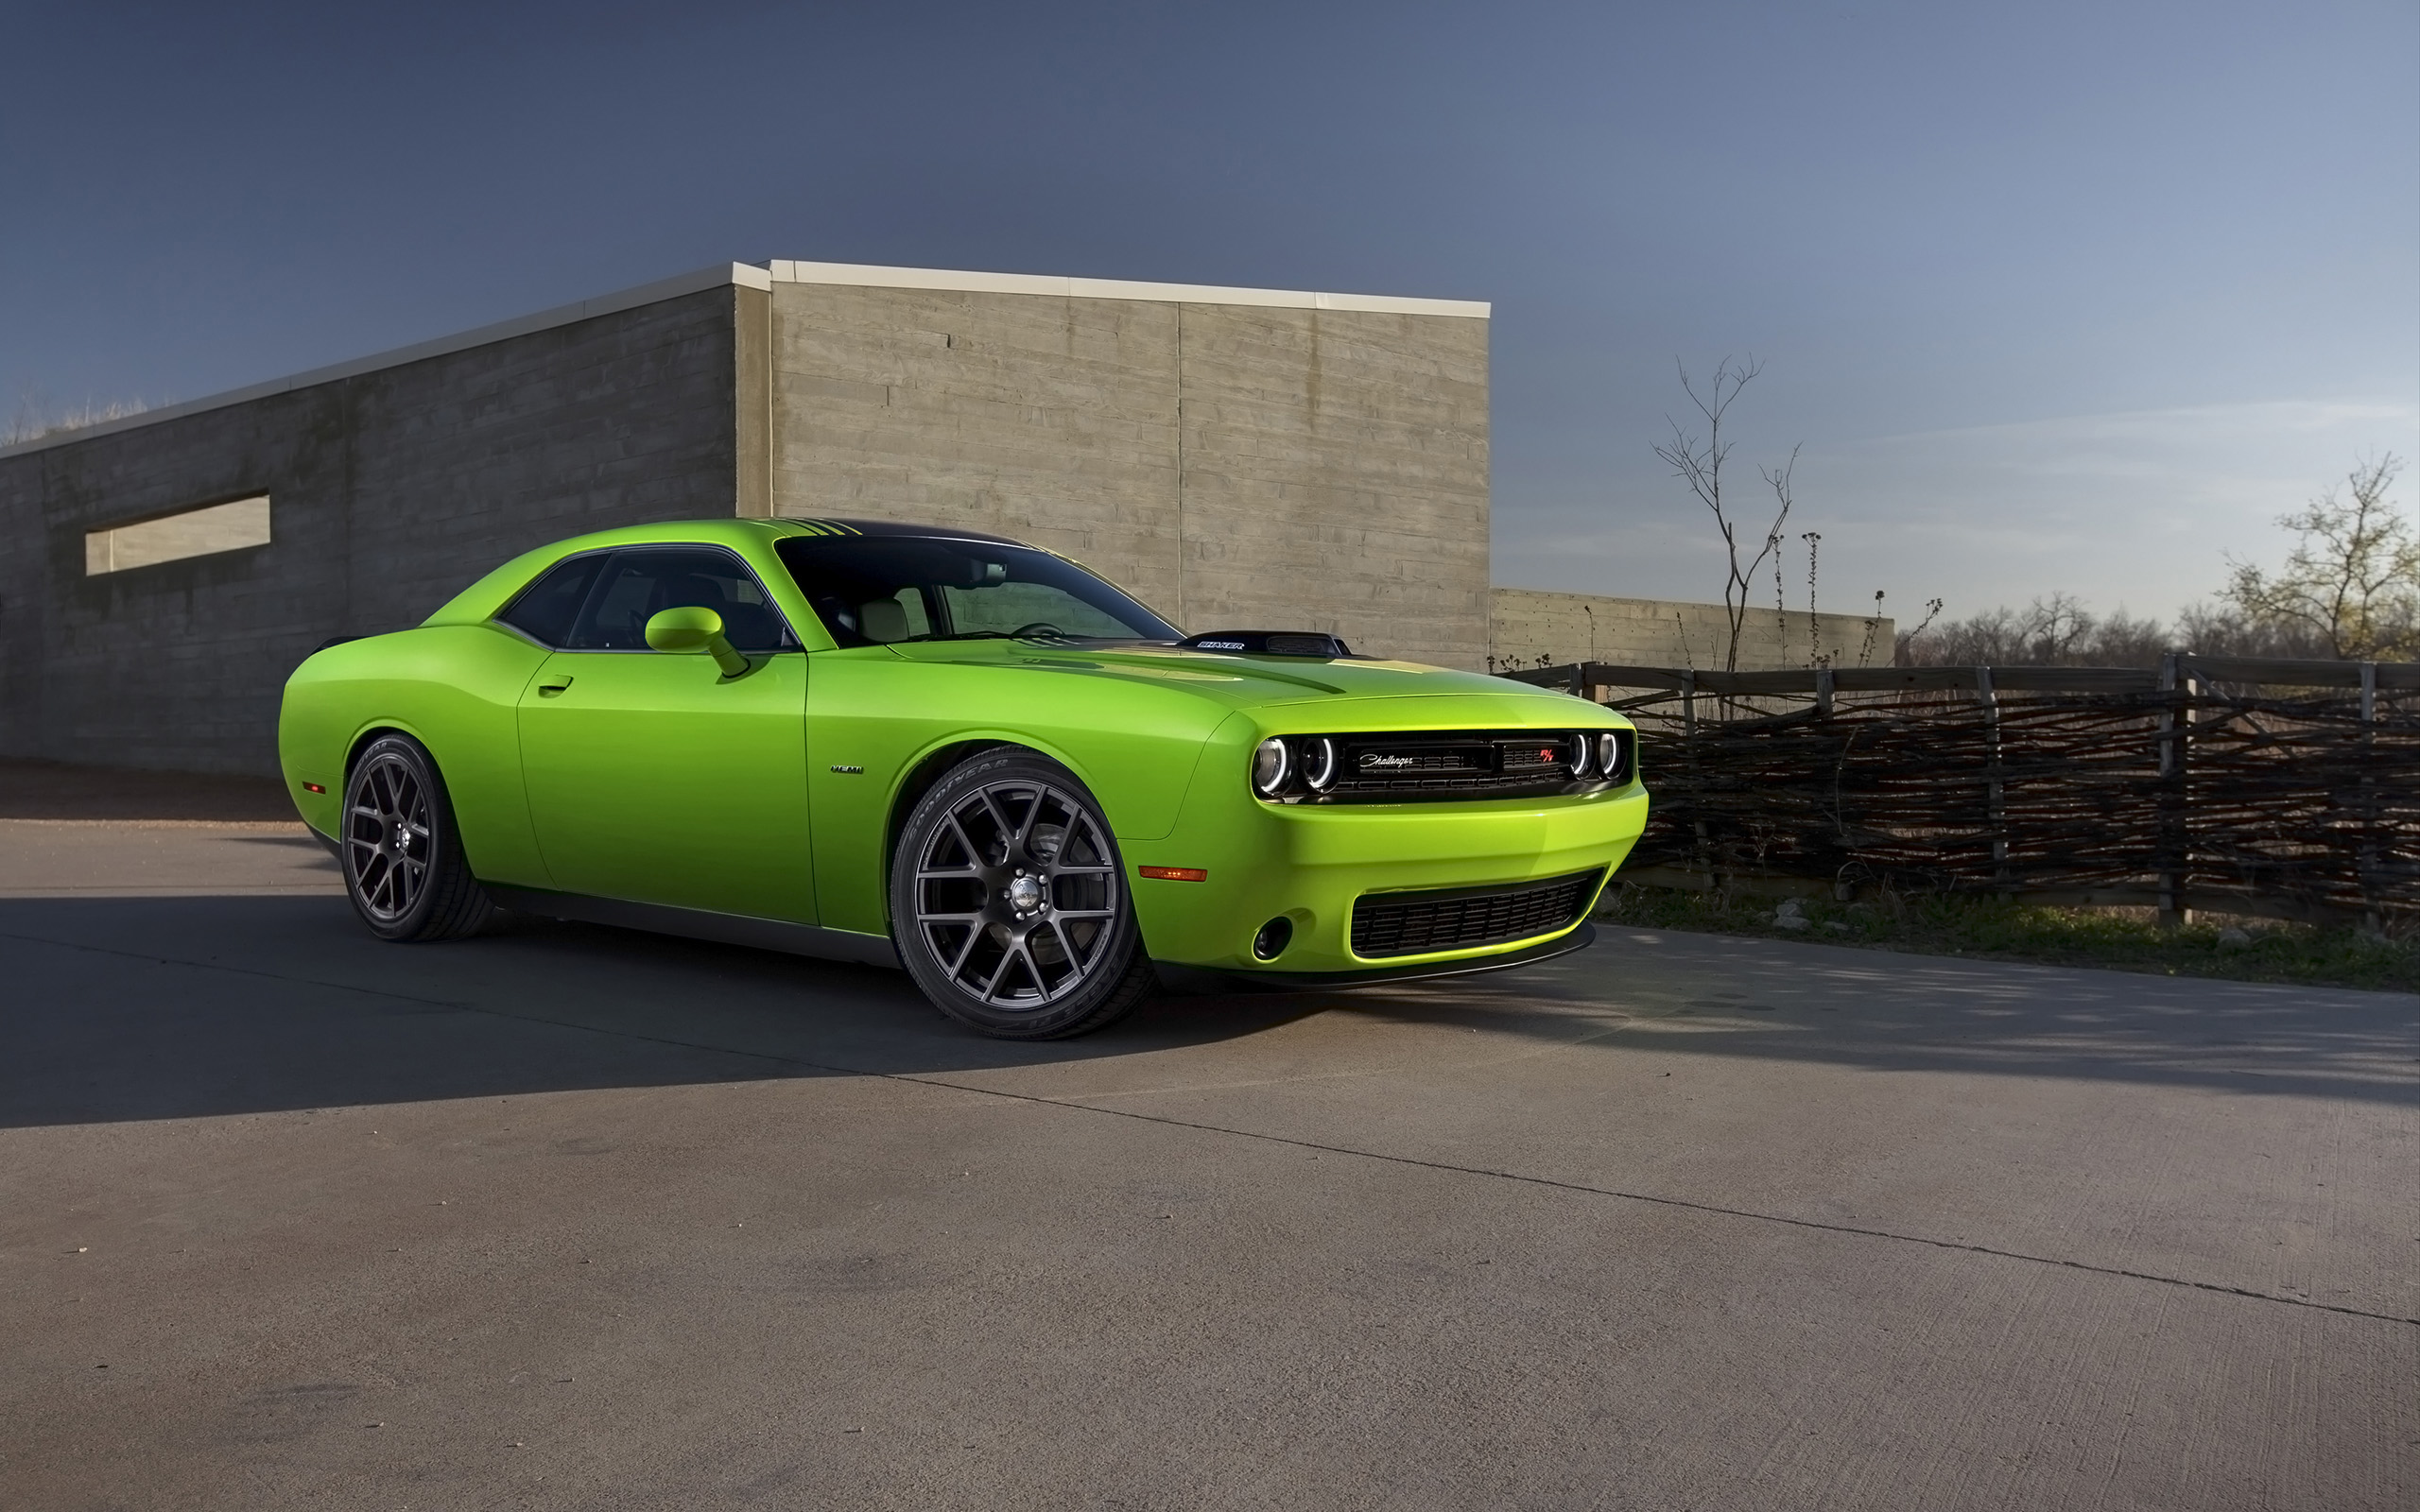 2015 Dodge Challenger Green